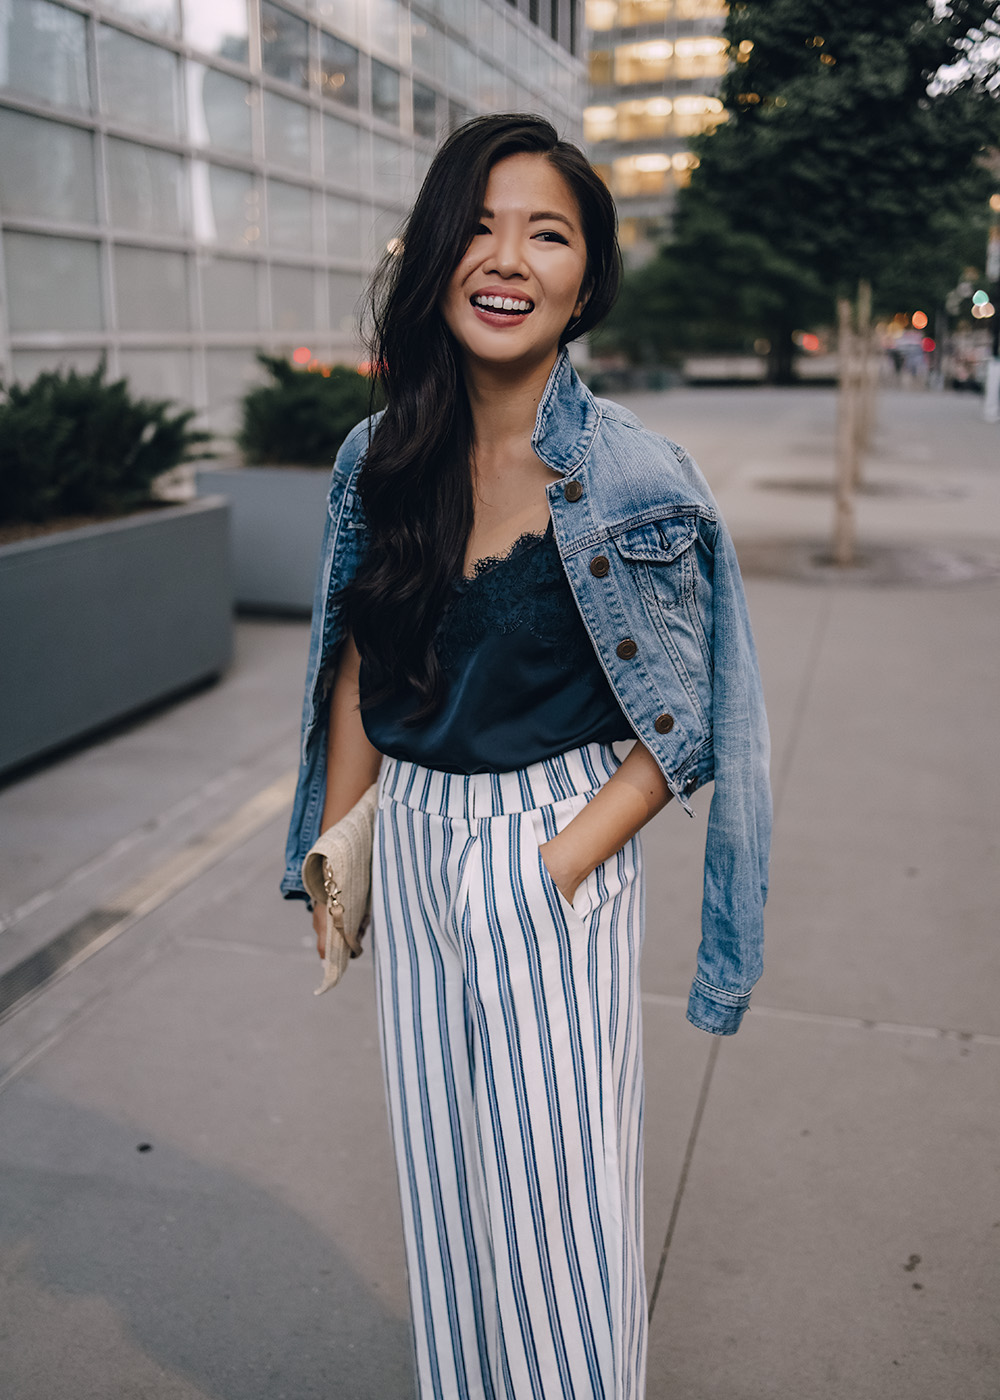 Casual Outfit for Women: Denim Jacket, Navy Lace Cami, Blue & White Striped Pants